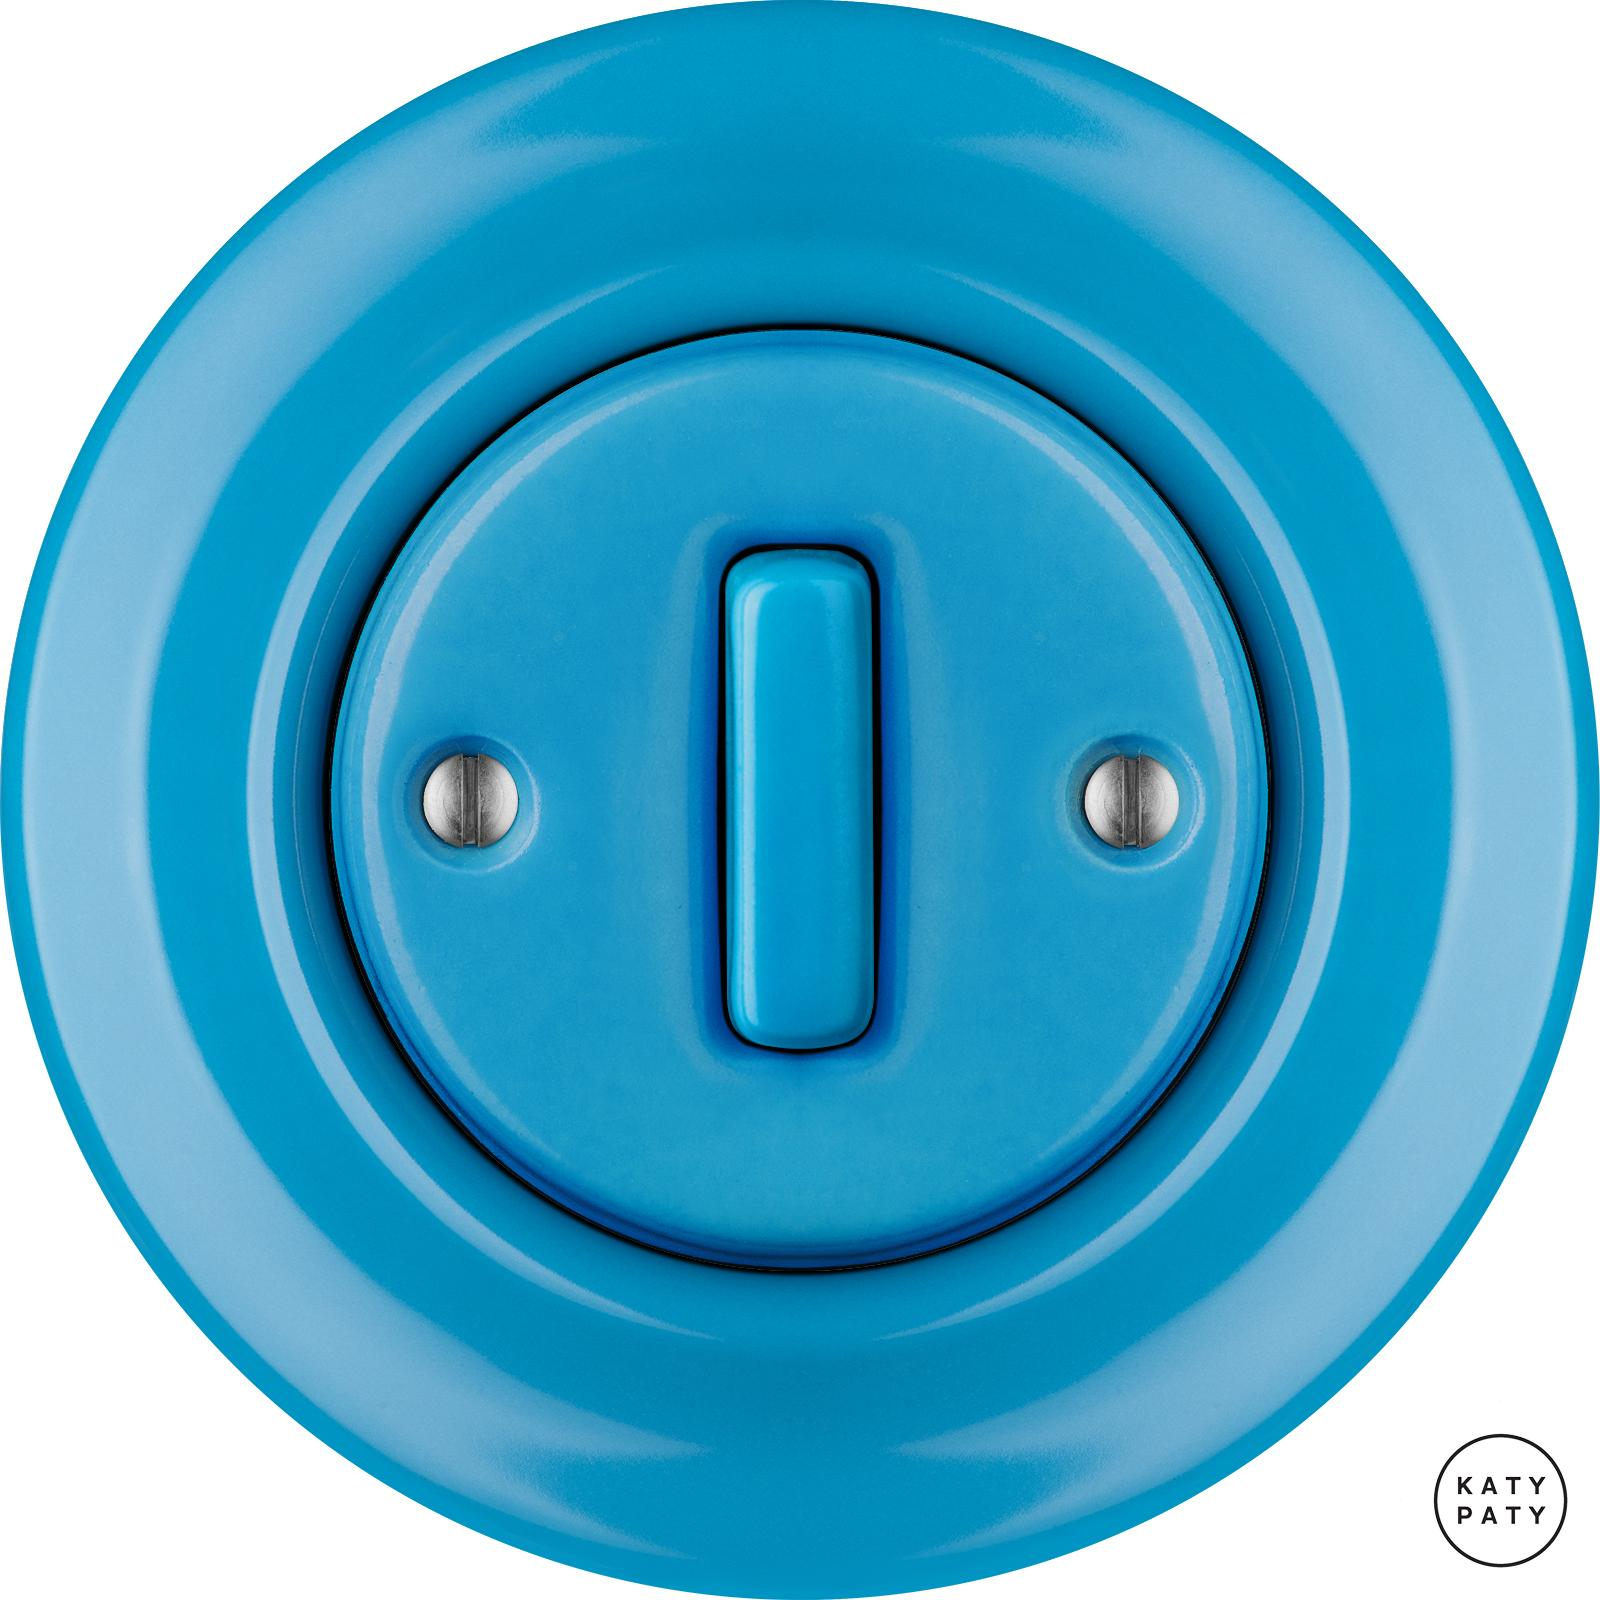 Porcelain switches - 1 gang - SLIM ()  - NITOR ARA | Katy Paty